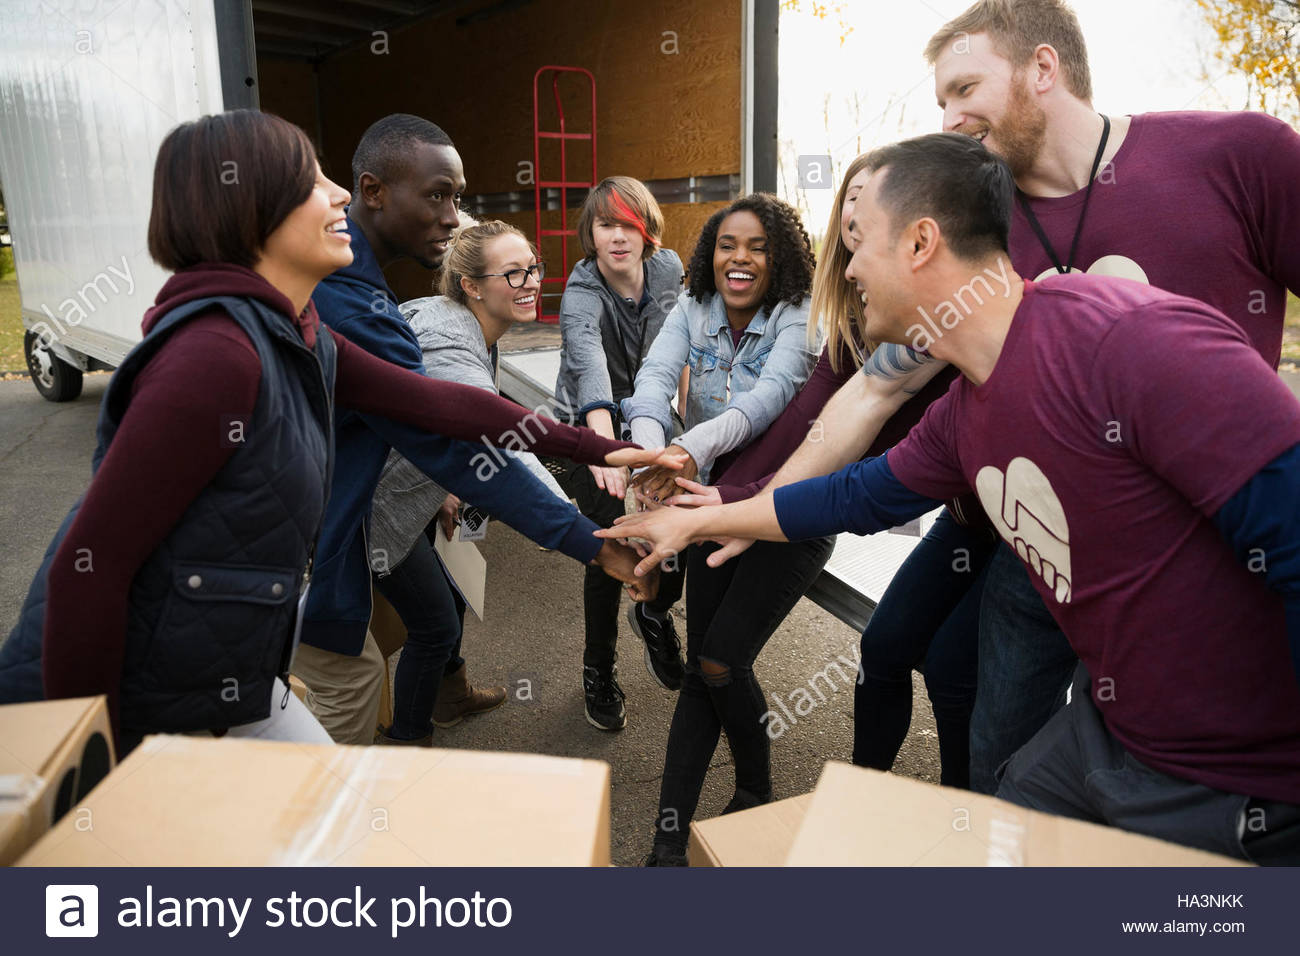 Enthusiastic volunteers joining hands in huddle outside truck - Stock Image